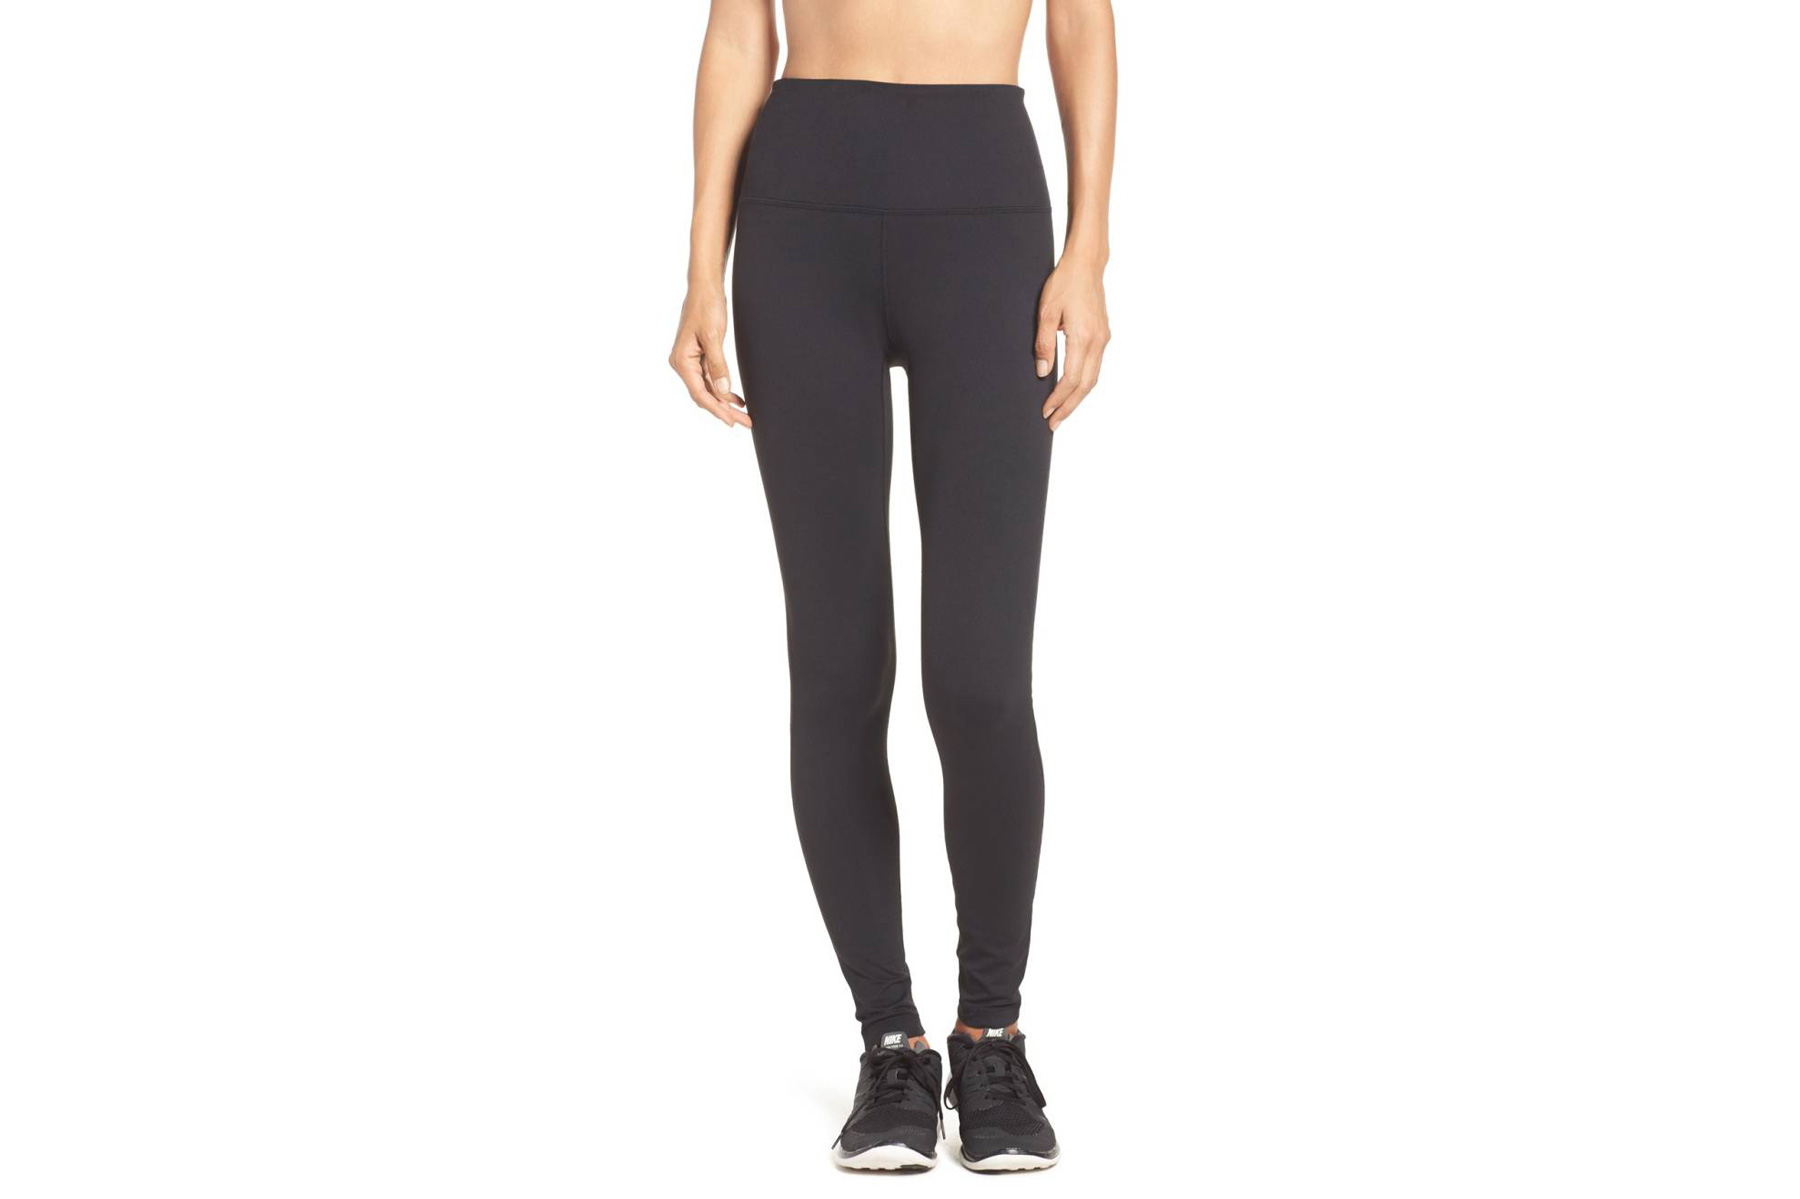 1c67f869265e9 6 Yoga Pants We'd Wear All Day Long (Regardless of What the Haters ...